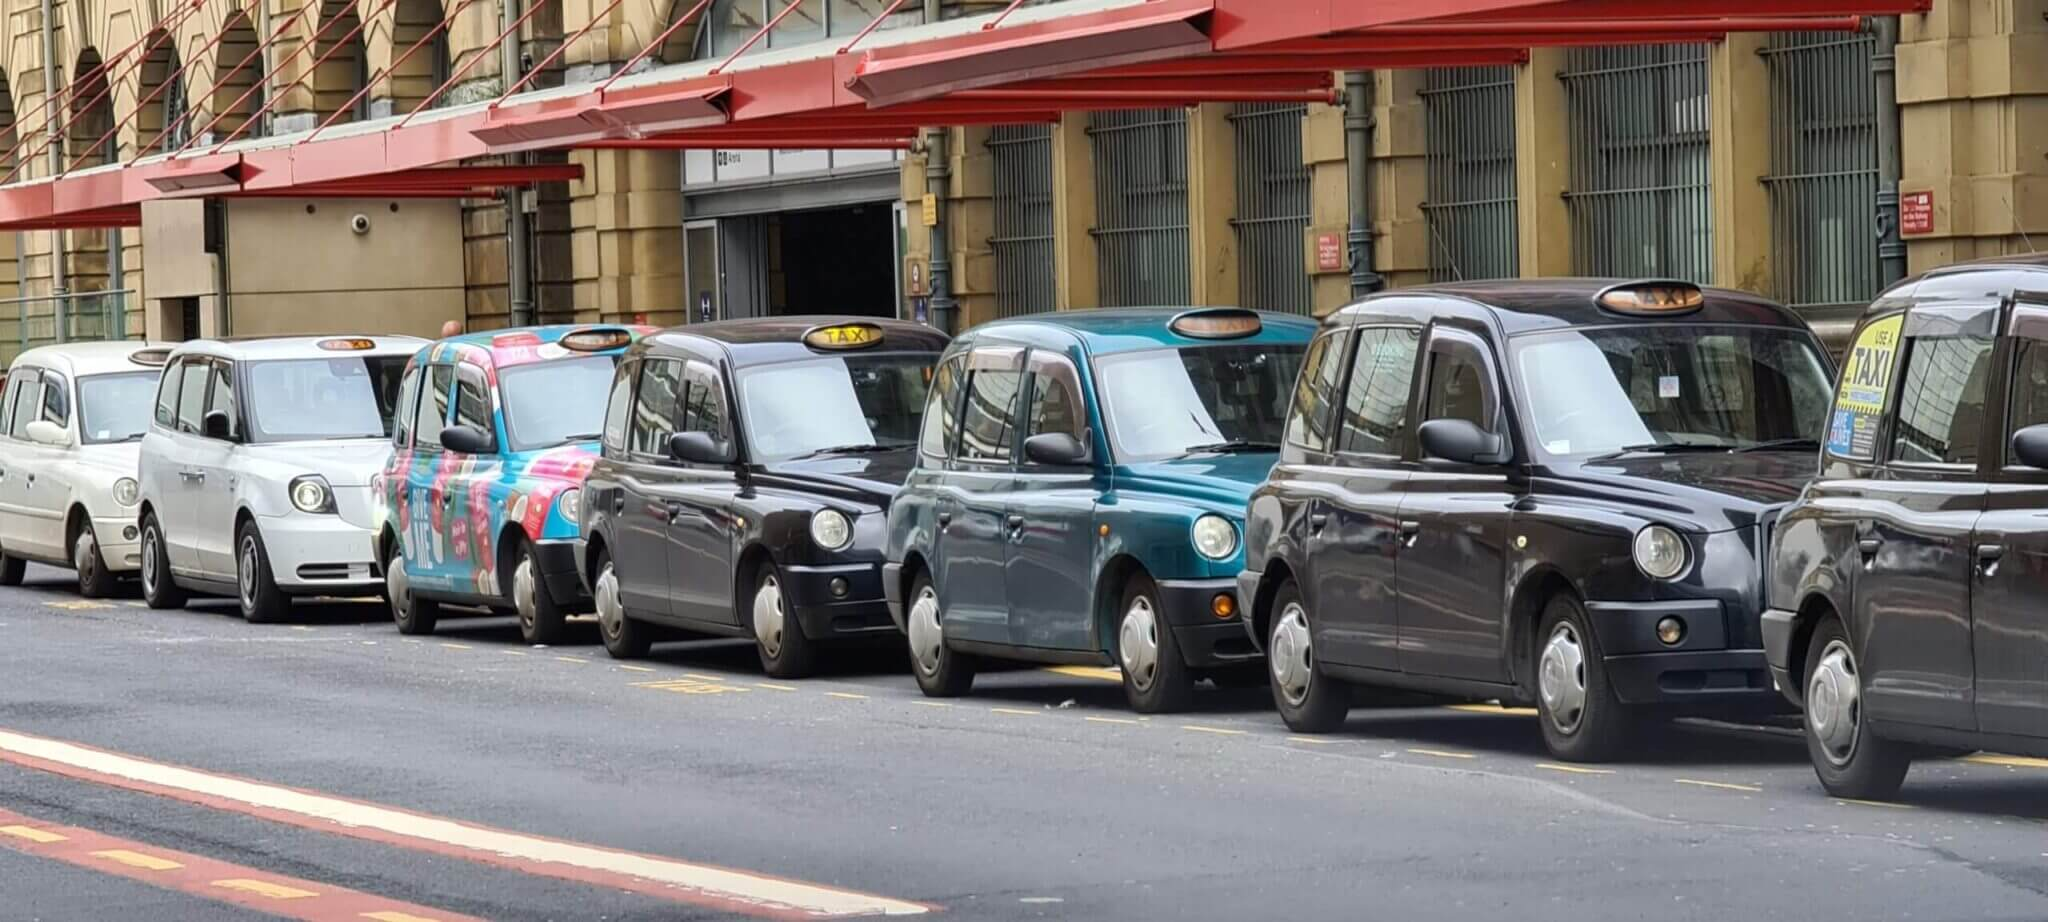 Manchester taxi service Victoria station